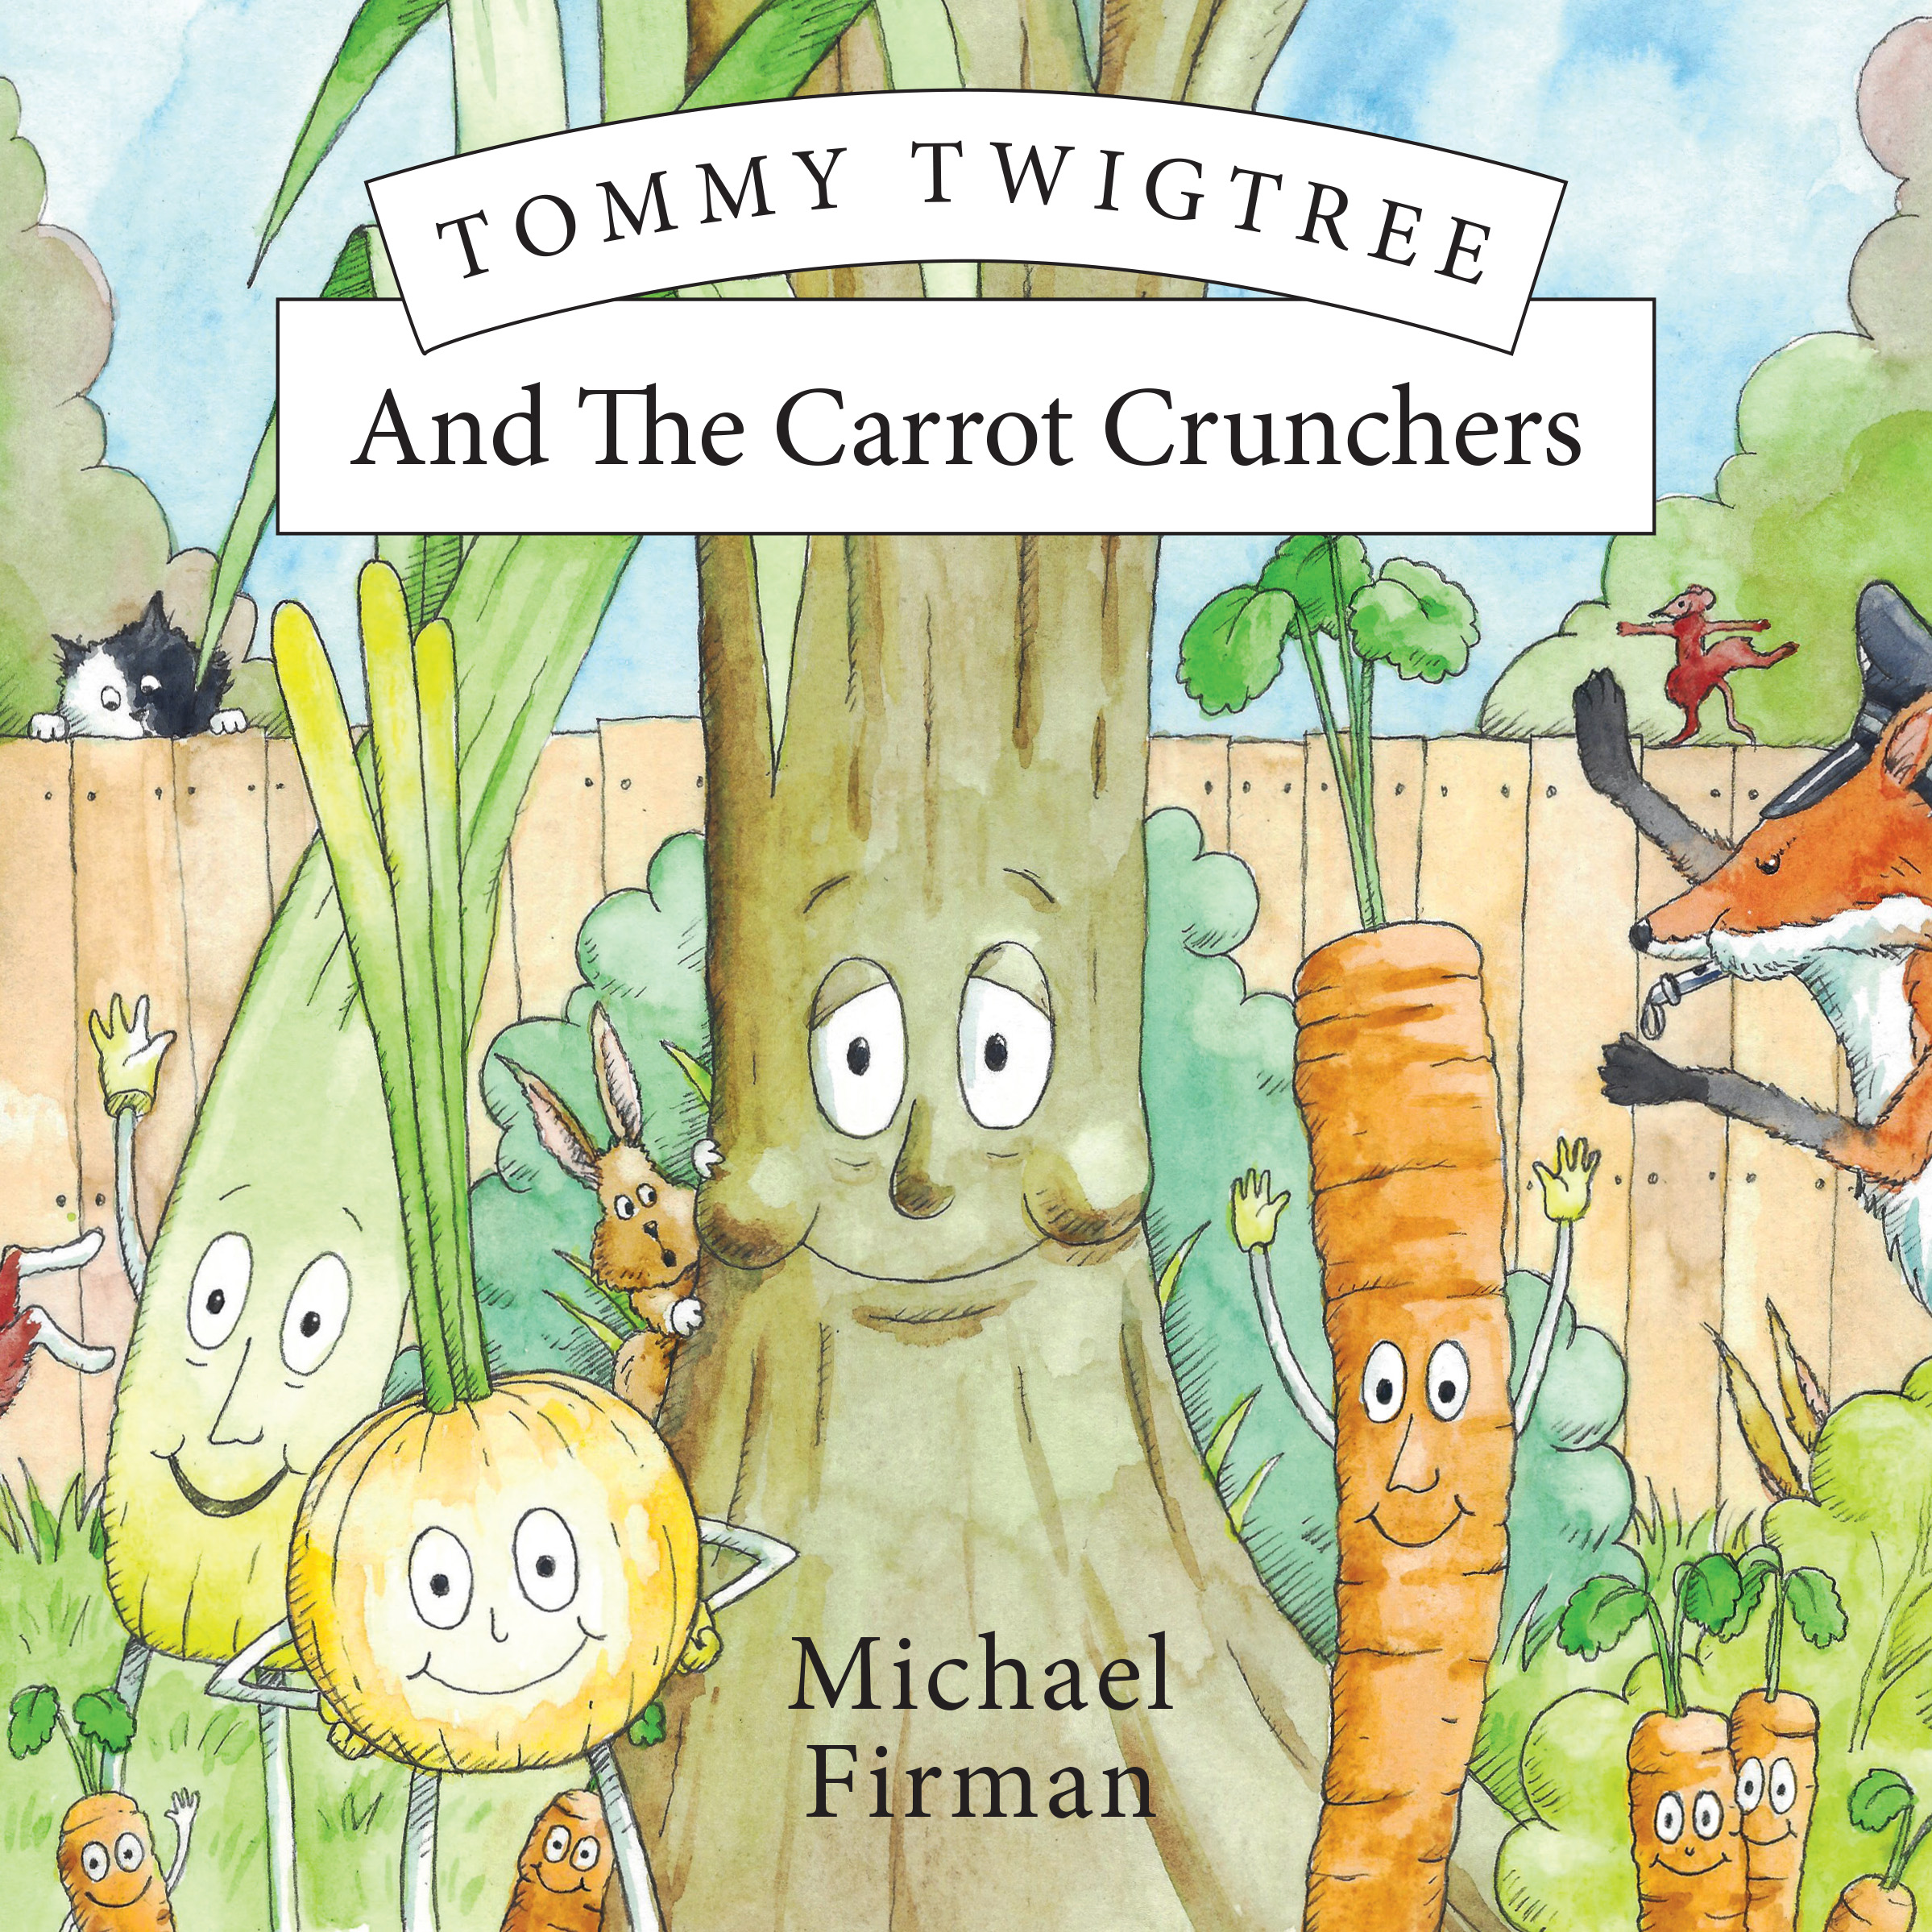 Tommy_Twigtree_and_the_Carrot_Crunchers